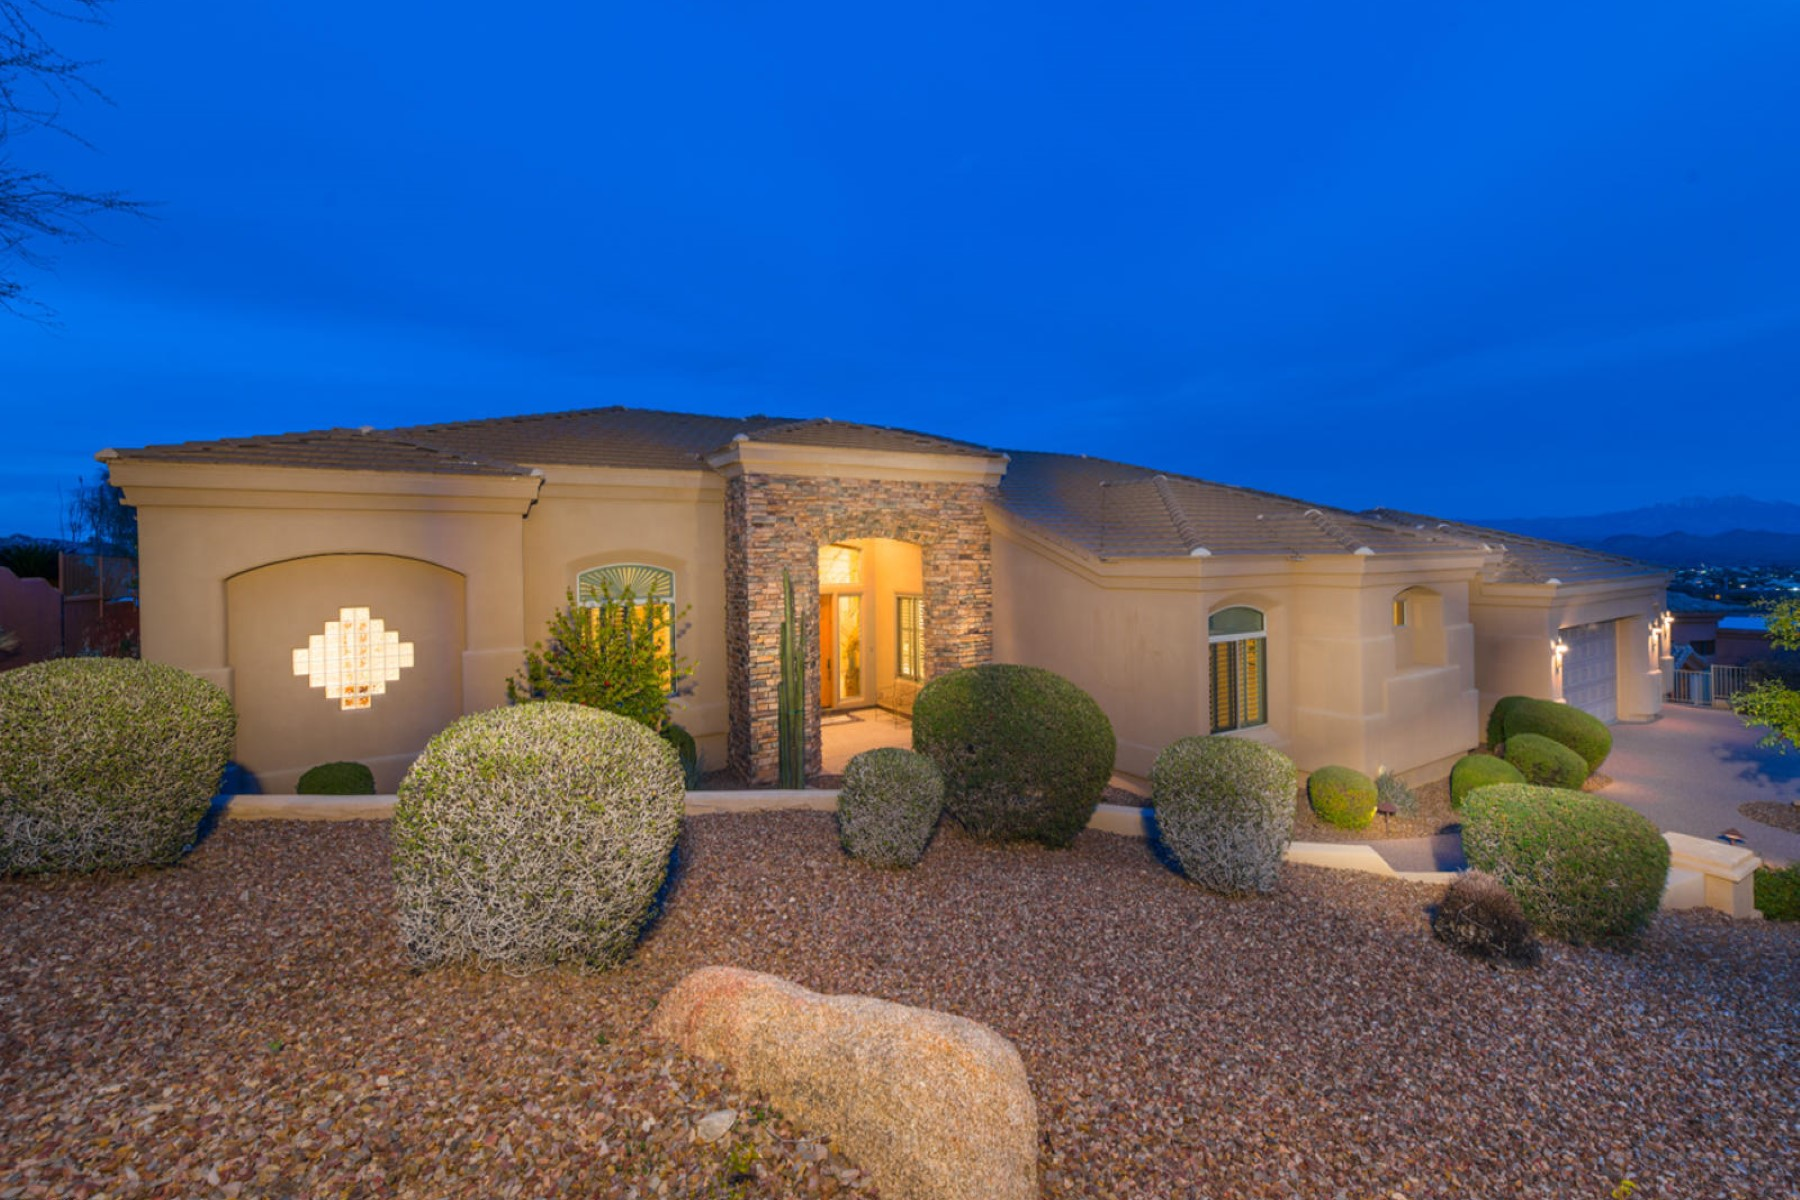 Single Family Home for Sale at Meticulously maintained single level stunning estate 15354 E Sundown DR Fountain Hills, Arizona, 85268 United States